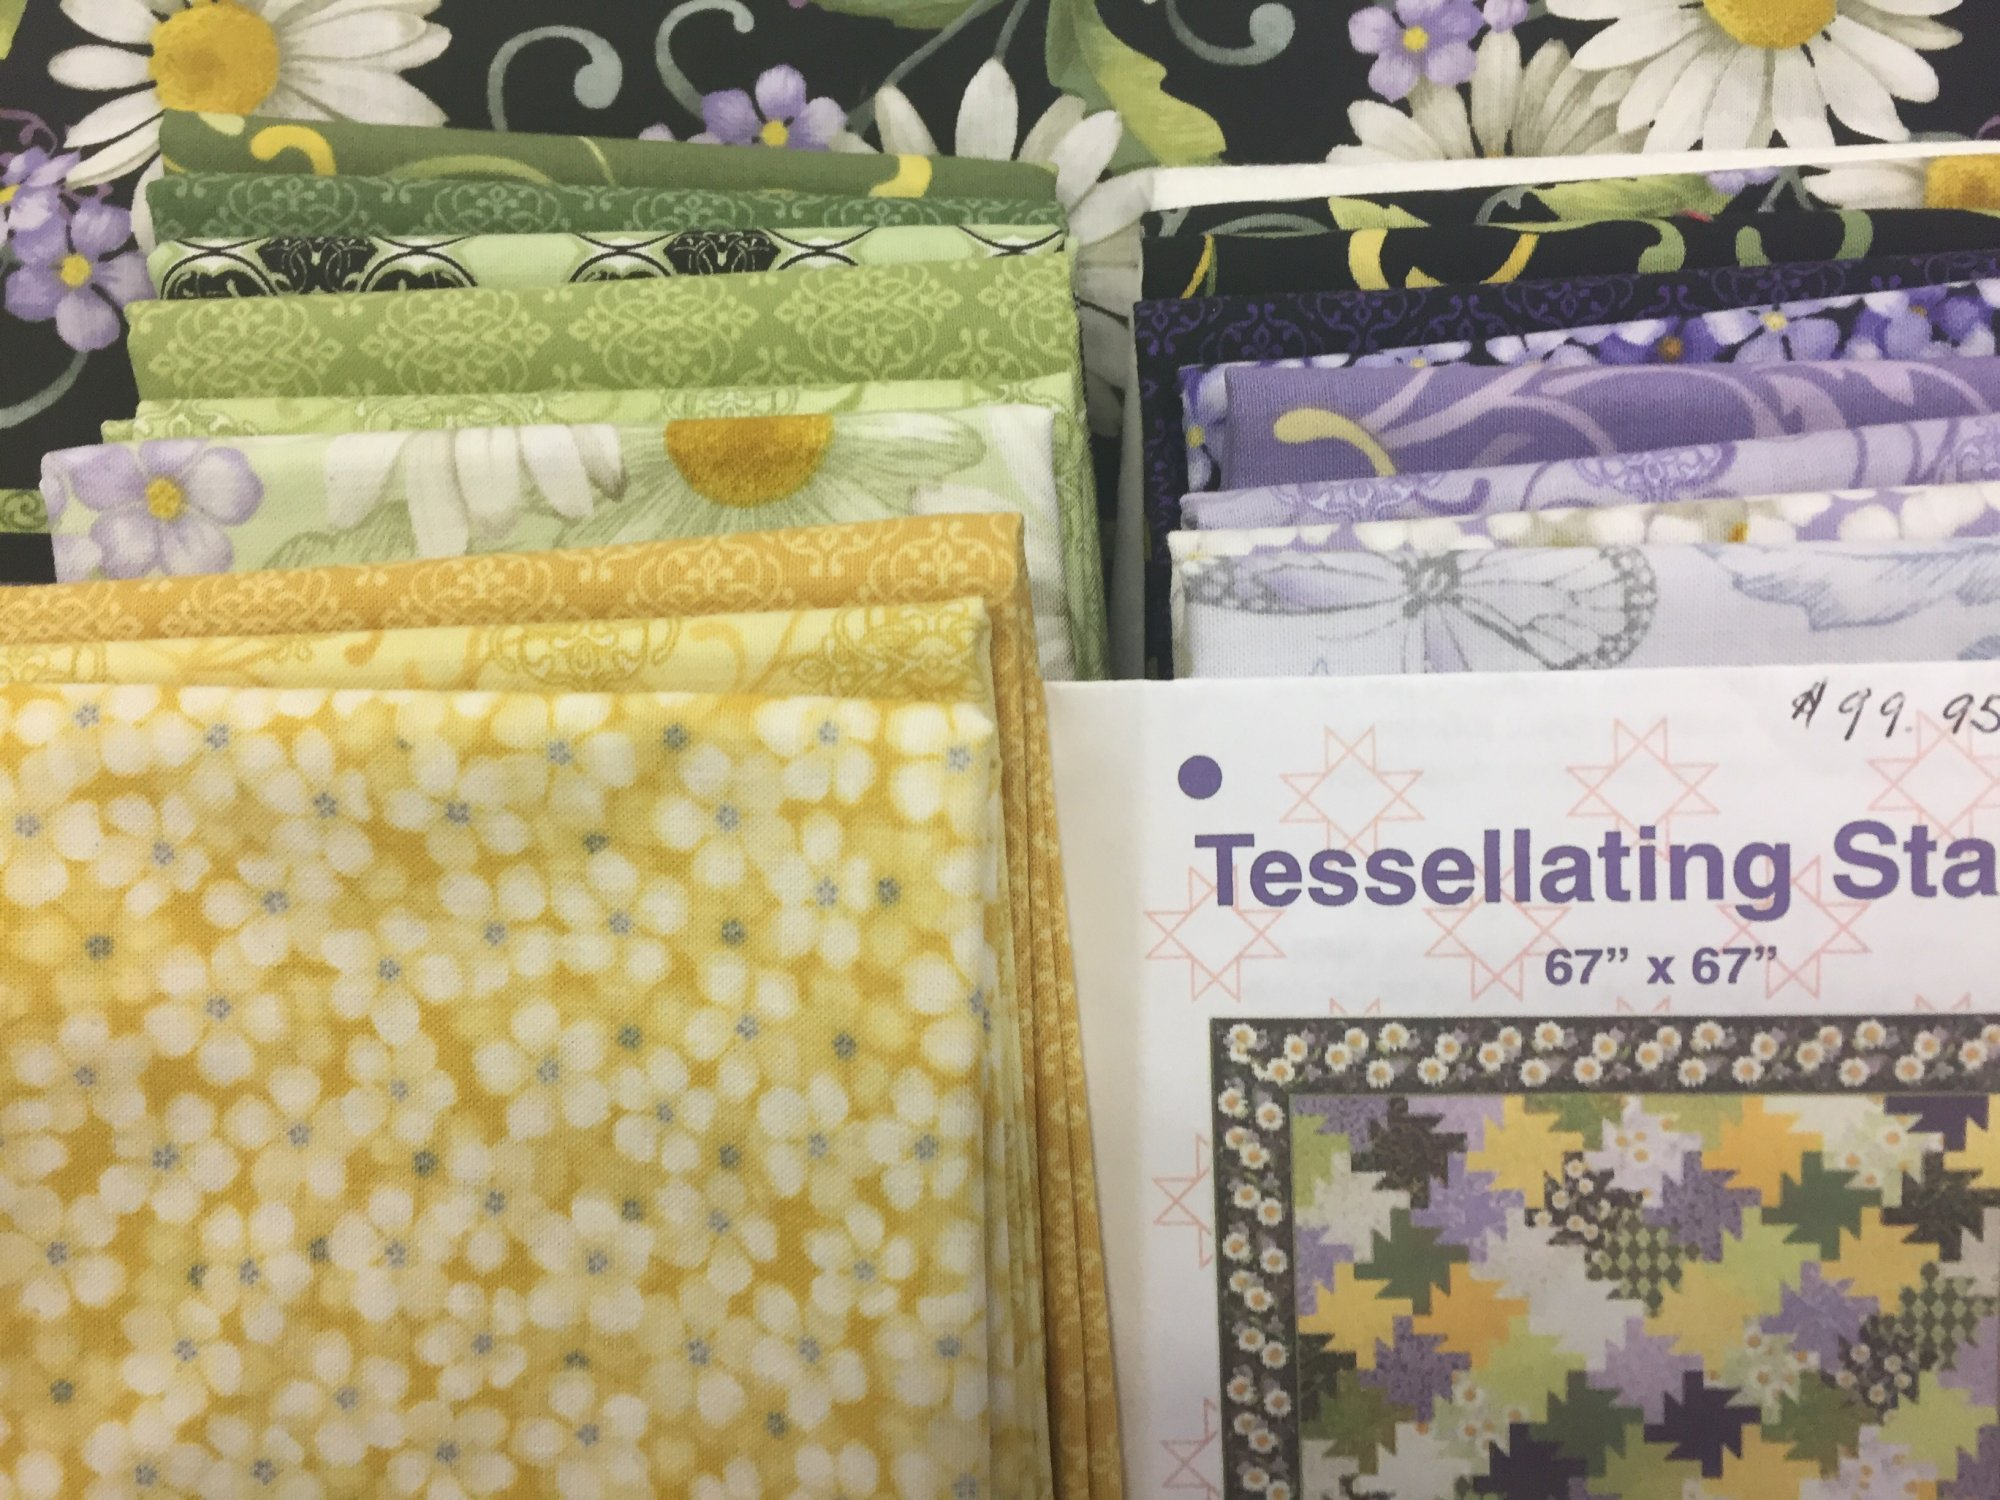 Tessellating Stars Quilt Kit featuring He Still Loves Me...